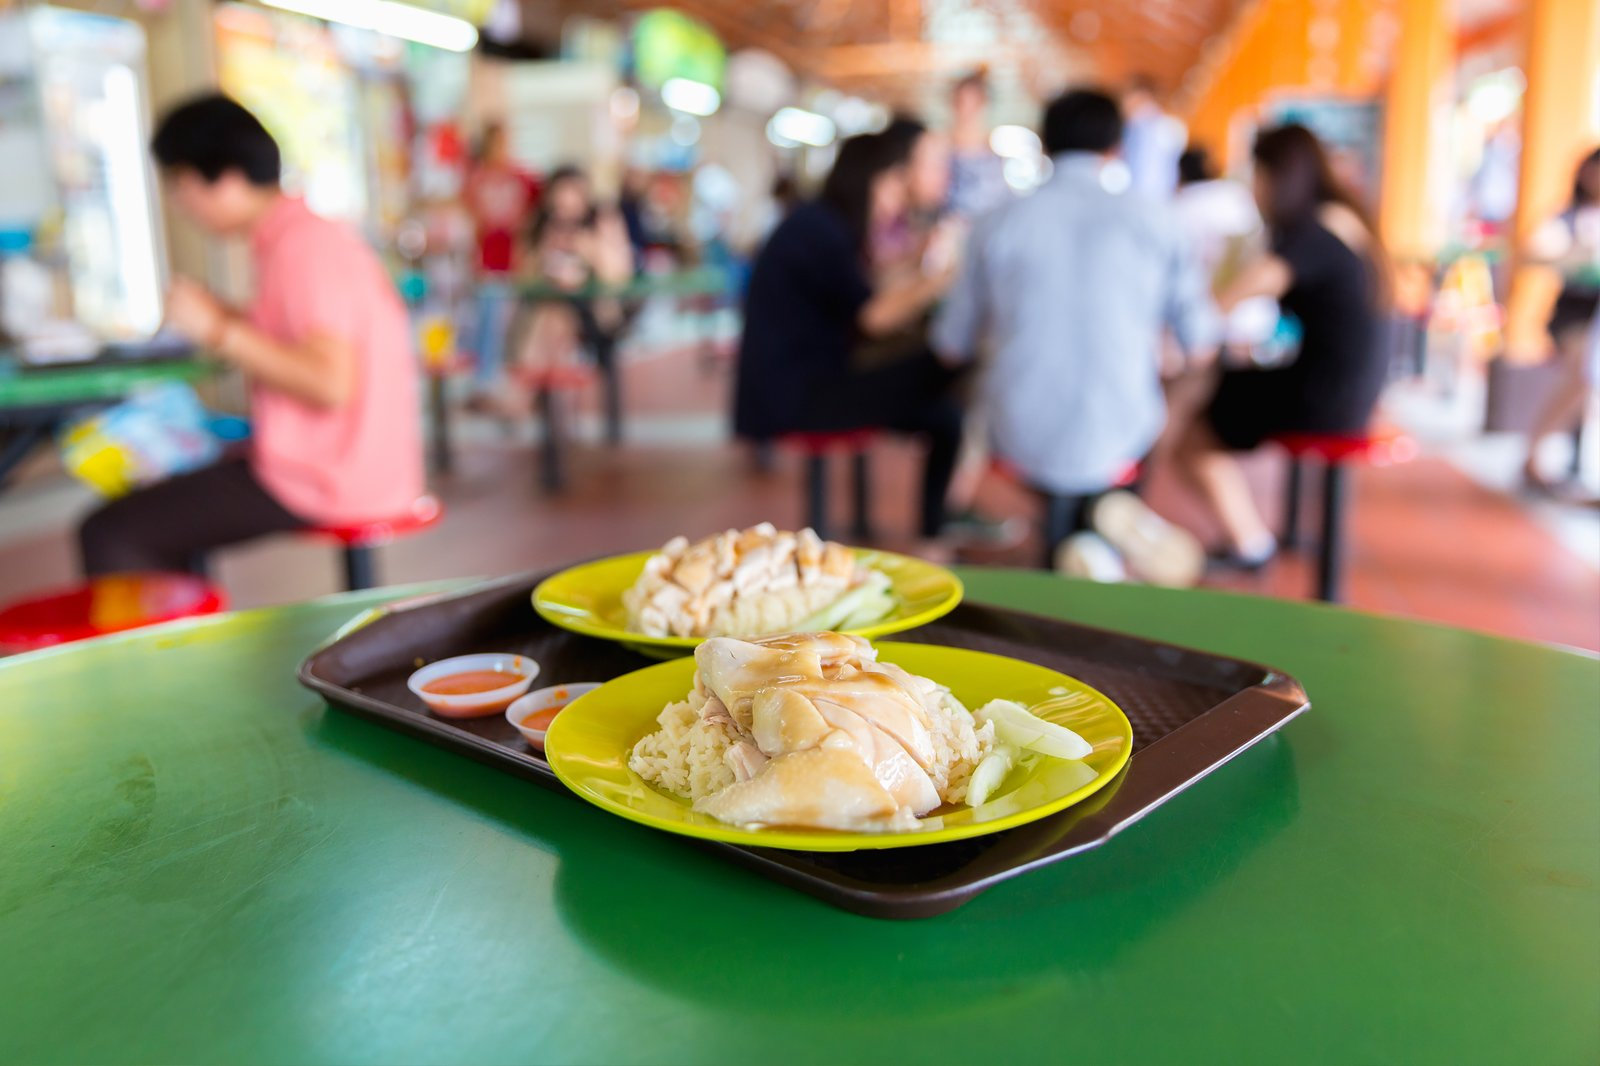 10 Best Singapore Hawker Centres - Our Favorite Hawker Stalls in